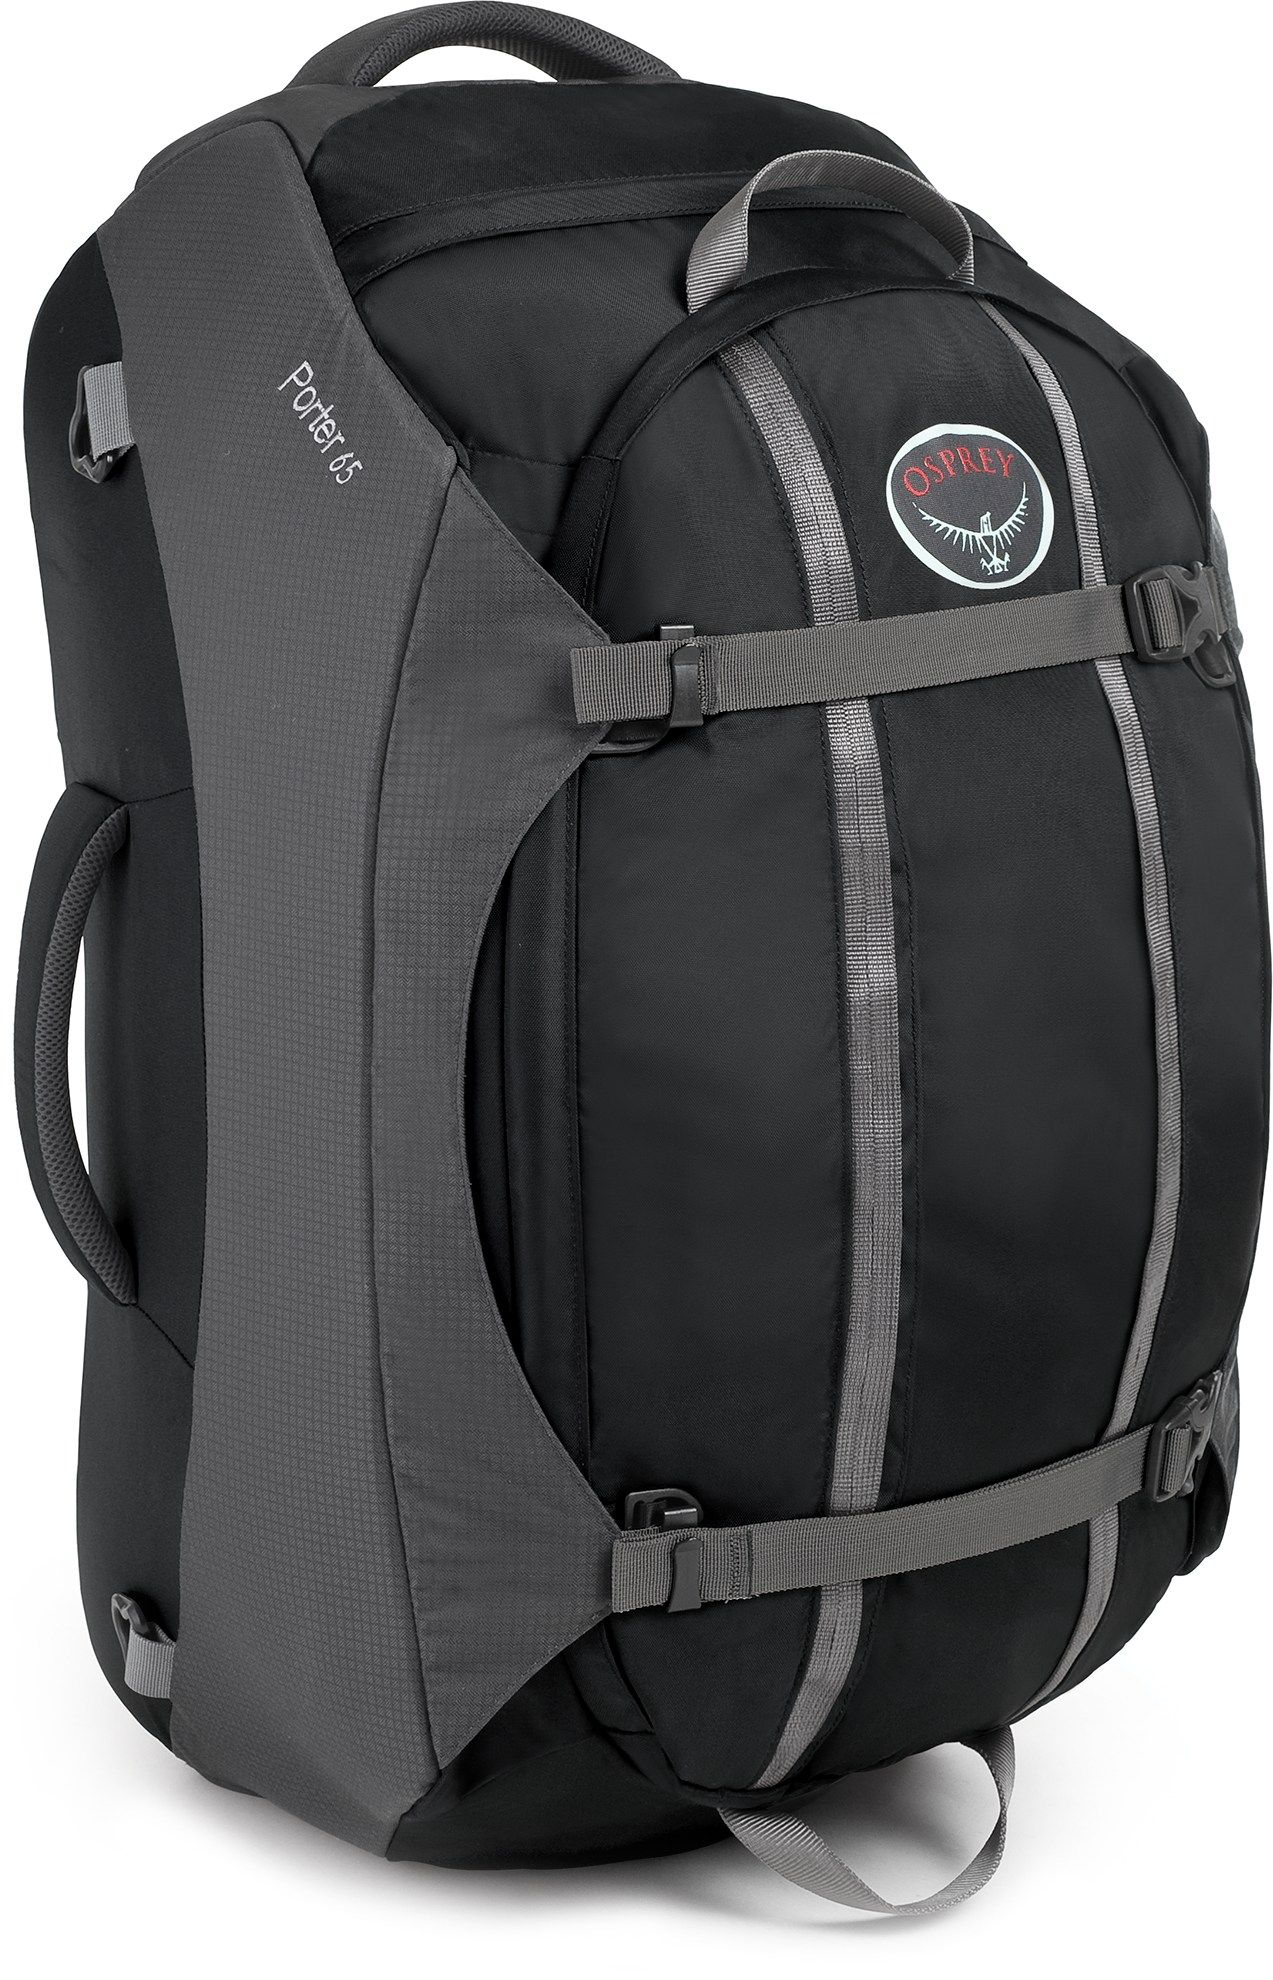 d89e247f1eb Osprey Porter 65 Travel Pack. Best carry on pack ever! Anytime I travel for  just a few days